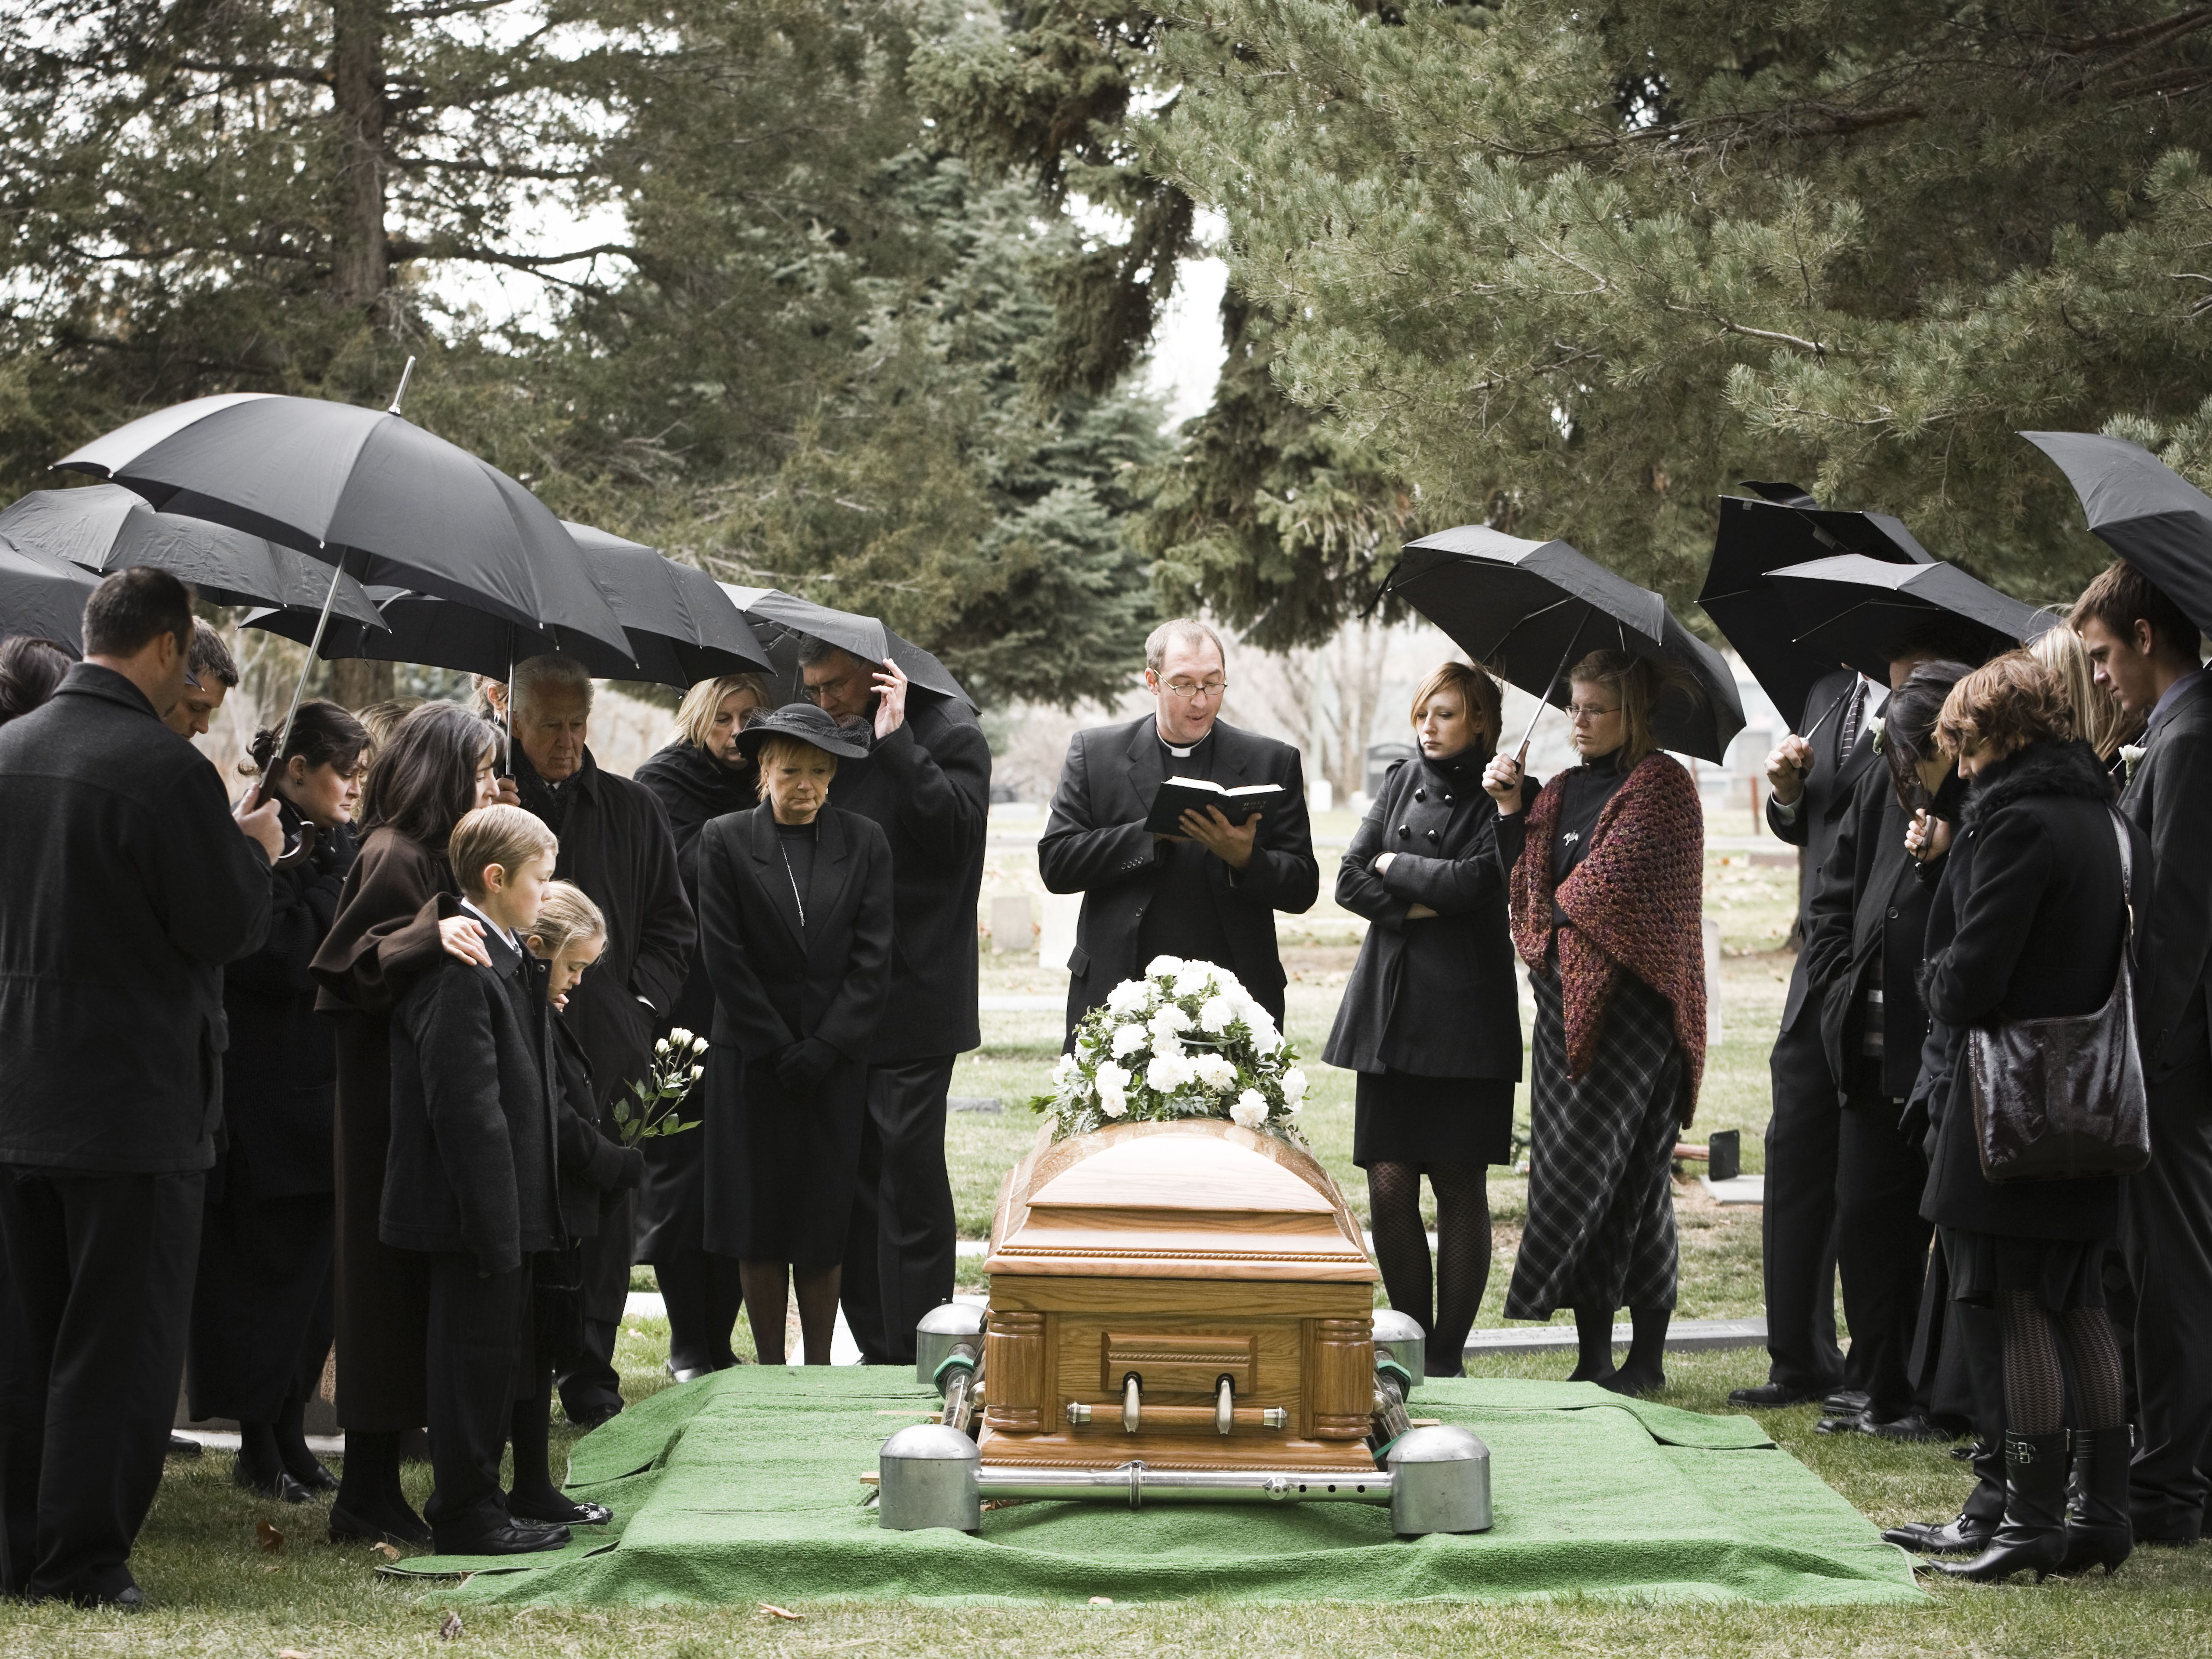 The Easiest Way To Plan A Christian Funeral Or Memorial Service